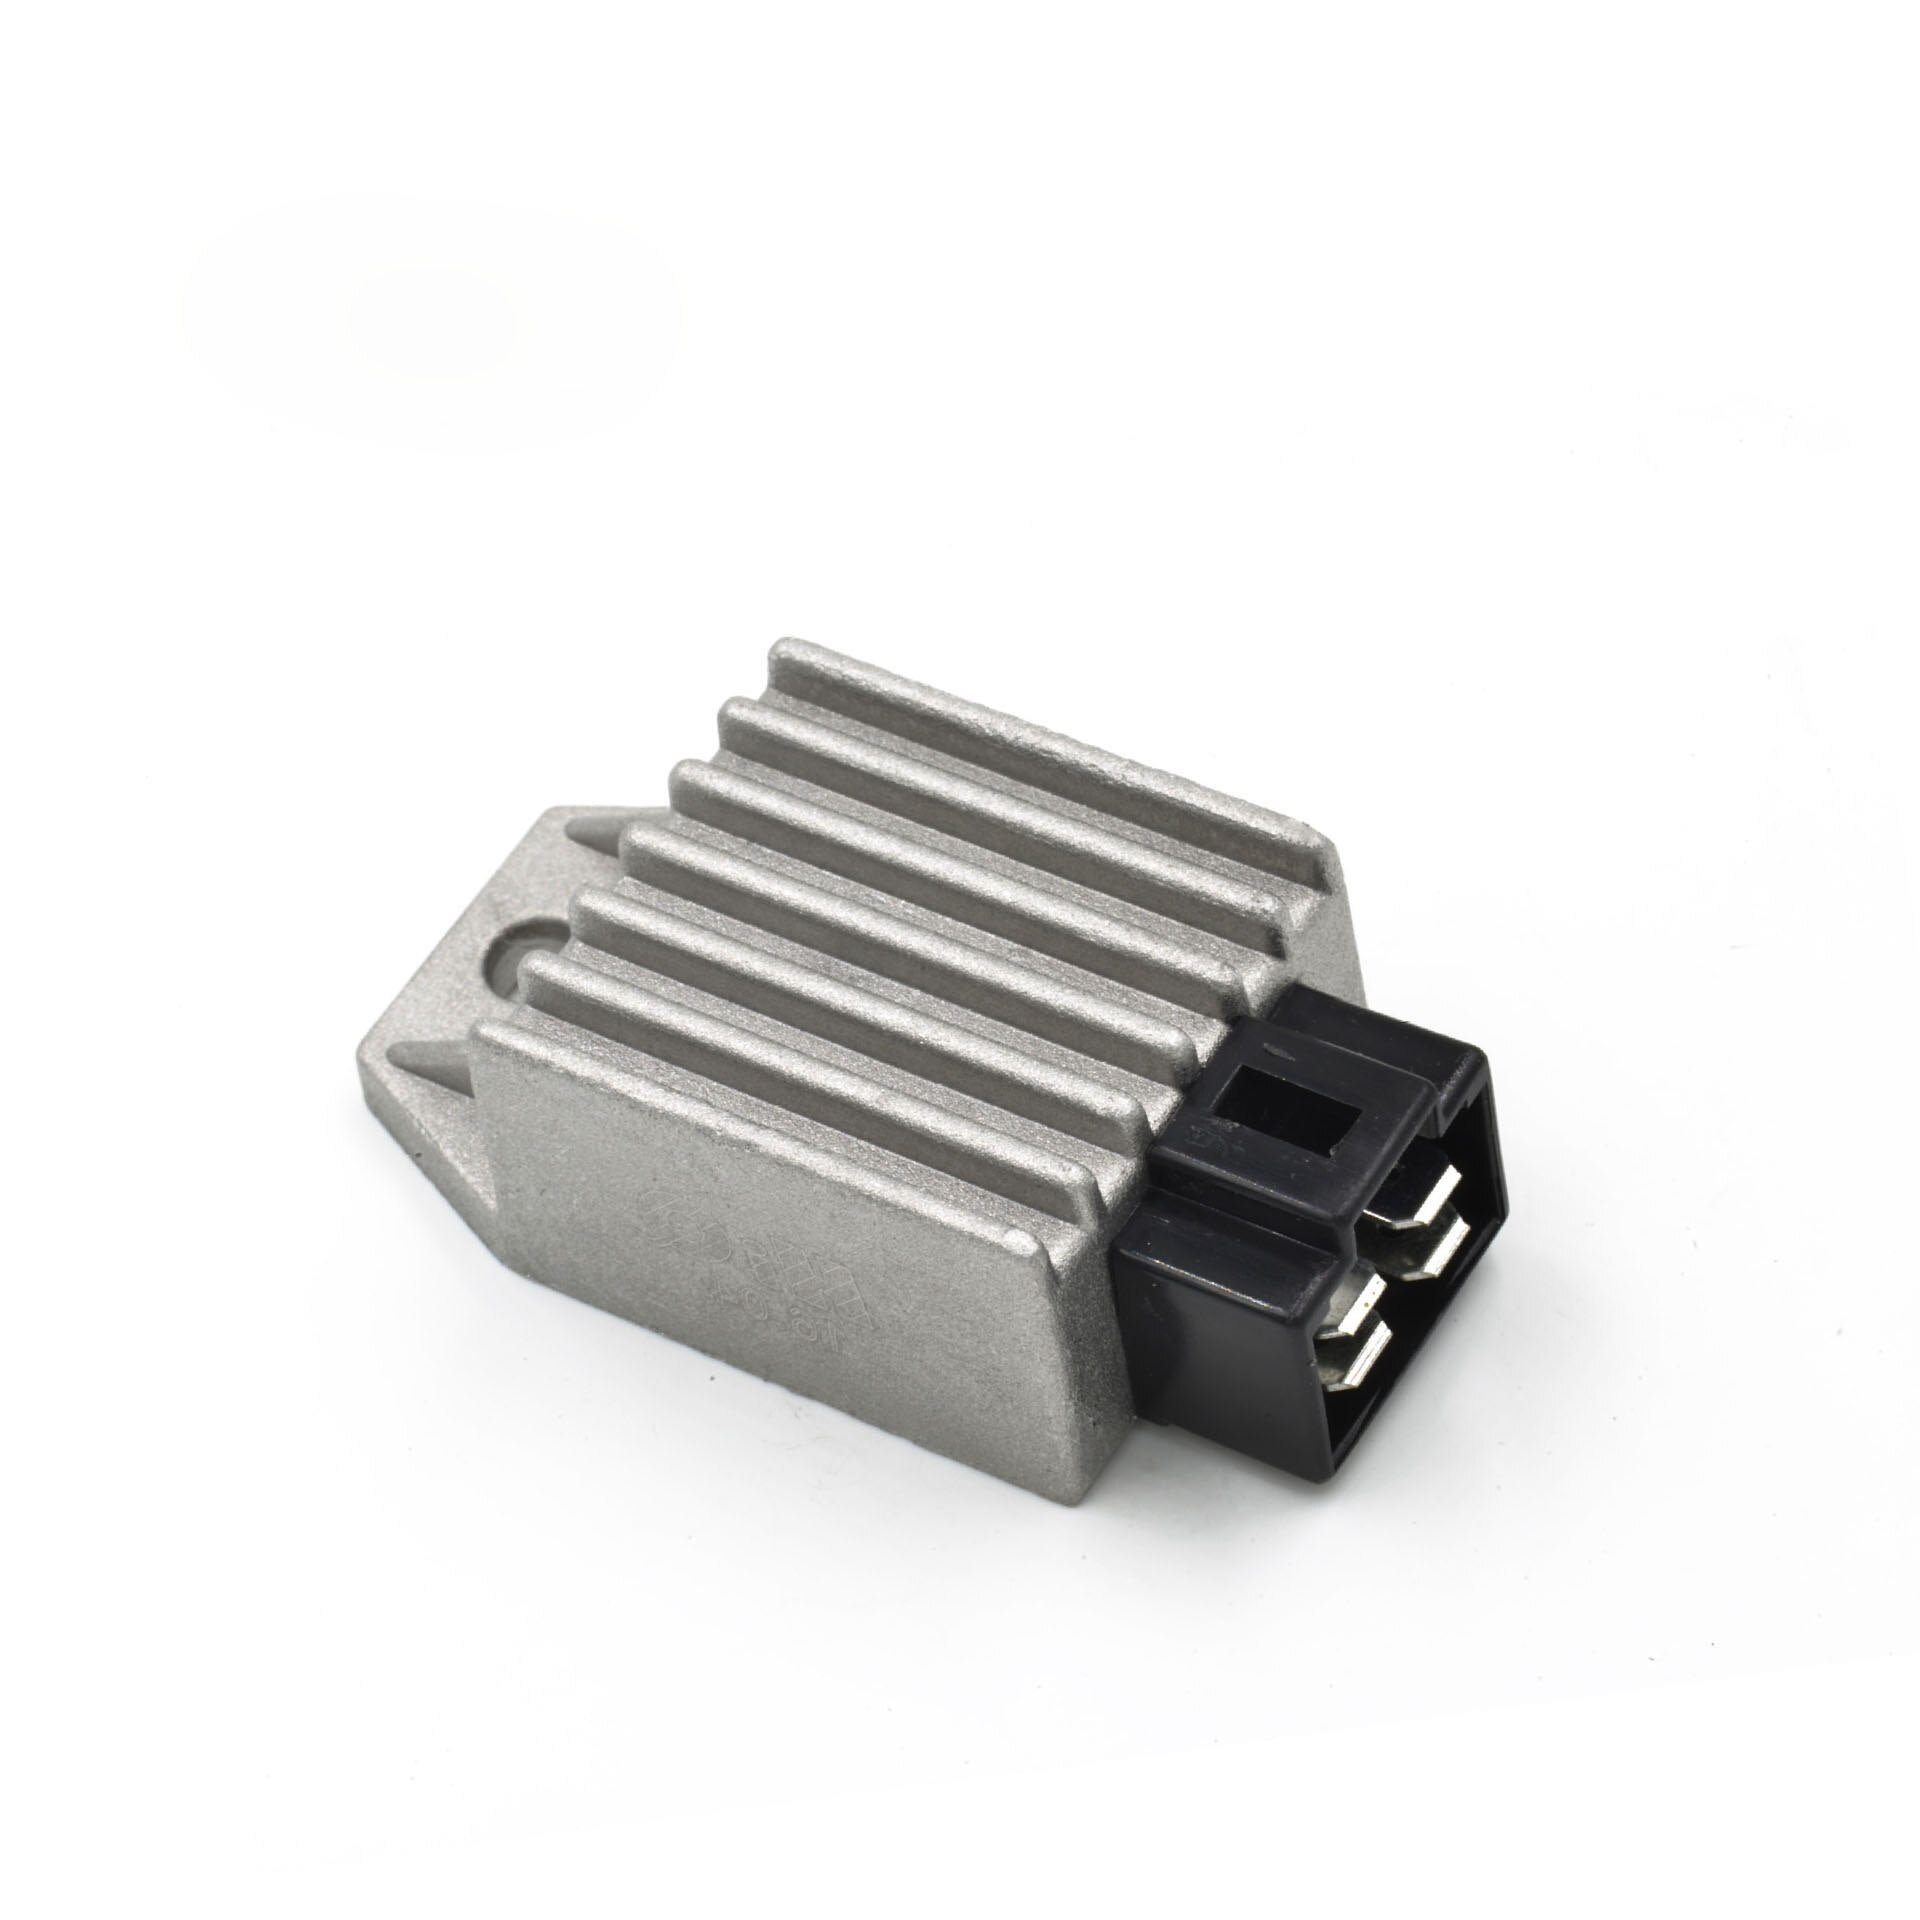 4 Pin 12V Voltage Regulator Rectifier for GY6 50cc 125cc 150cc Moped Scooter ATV